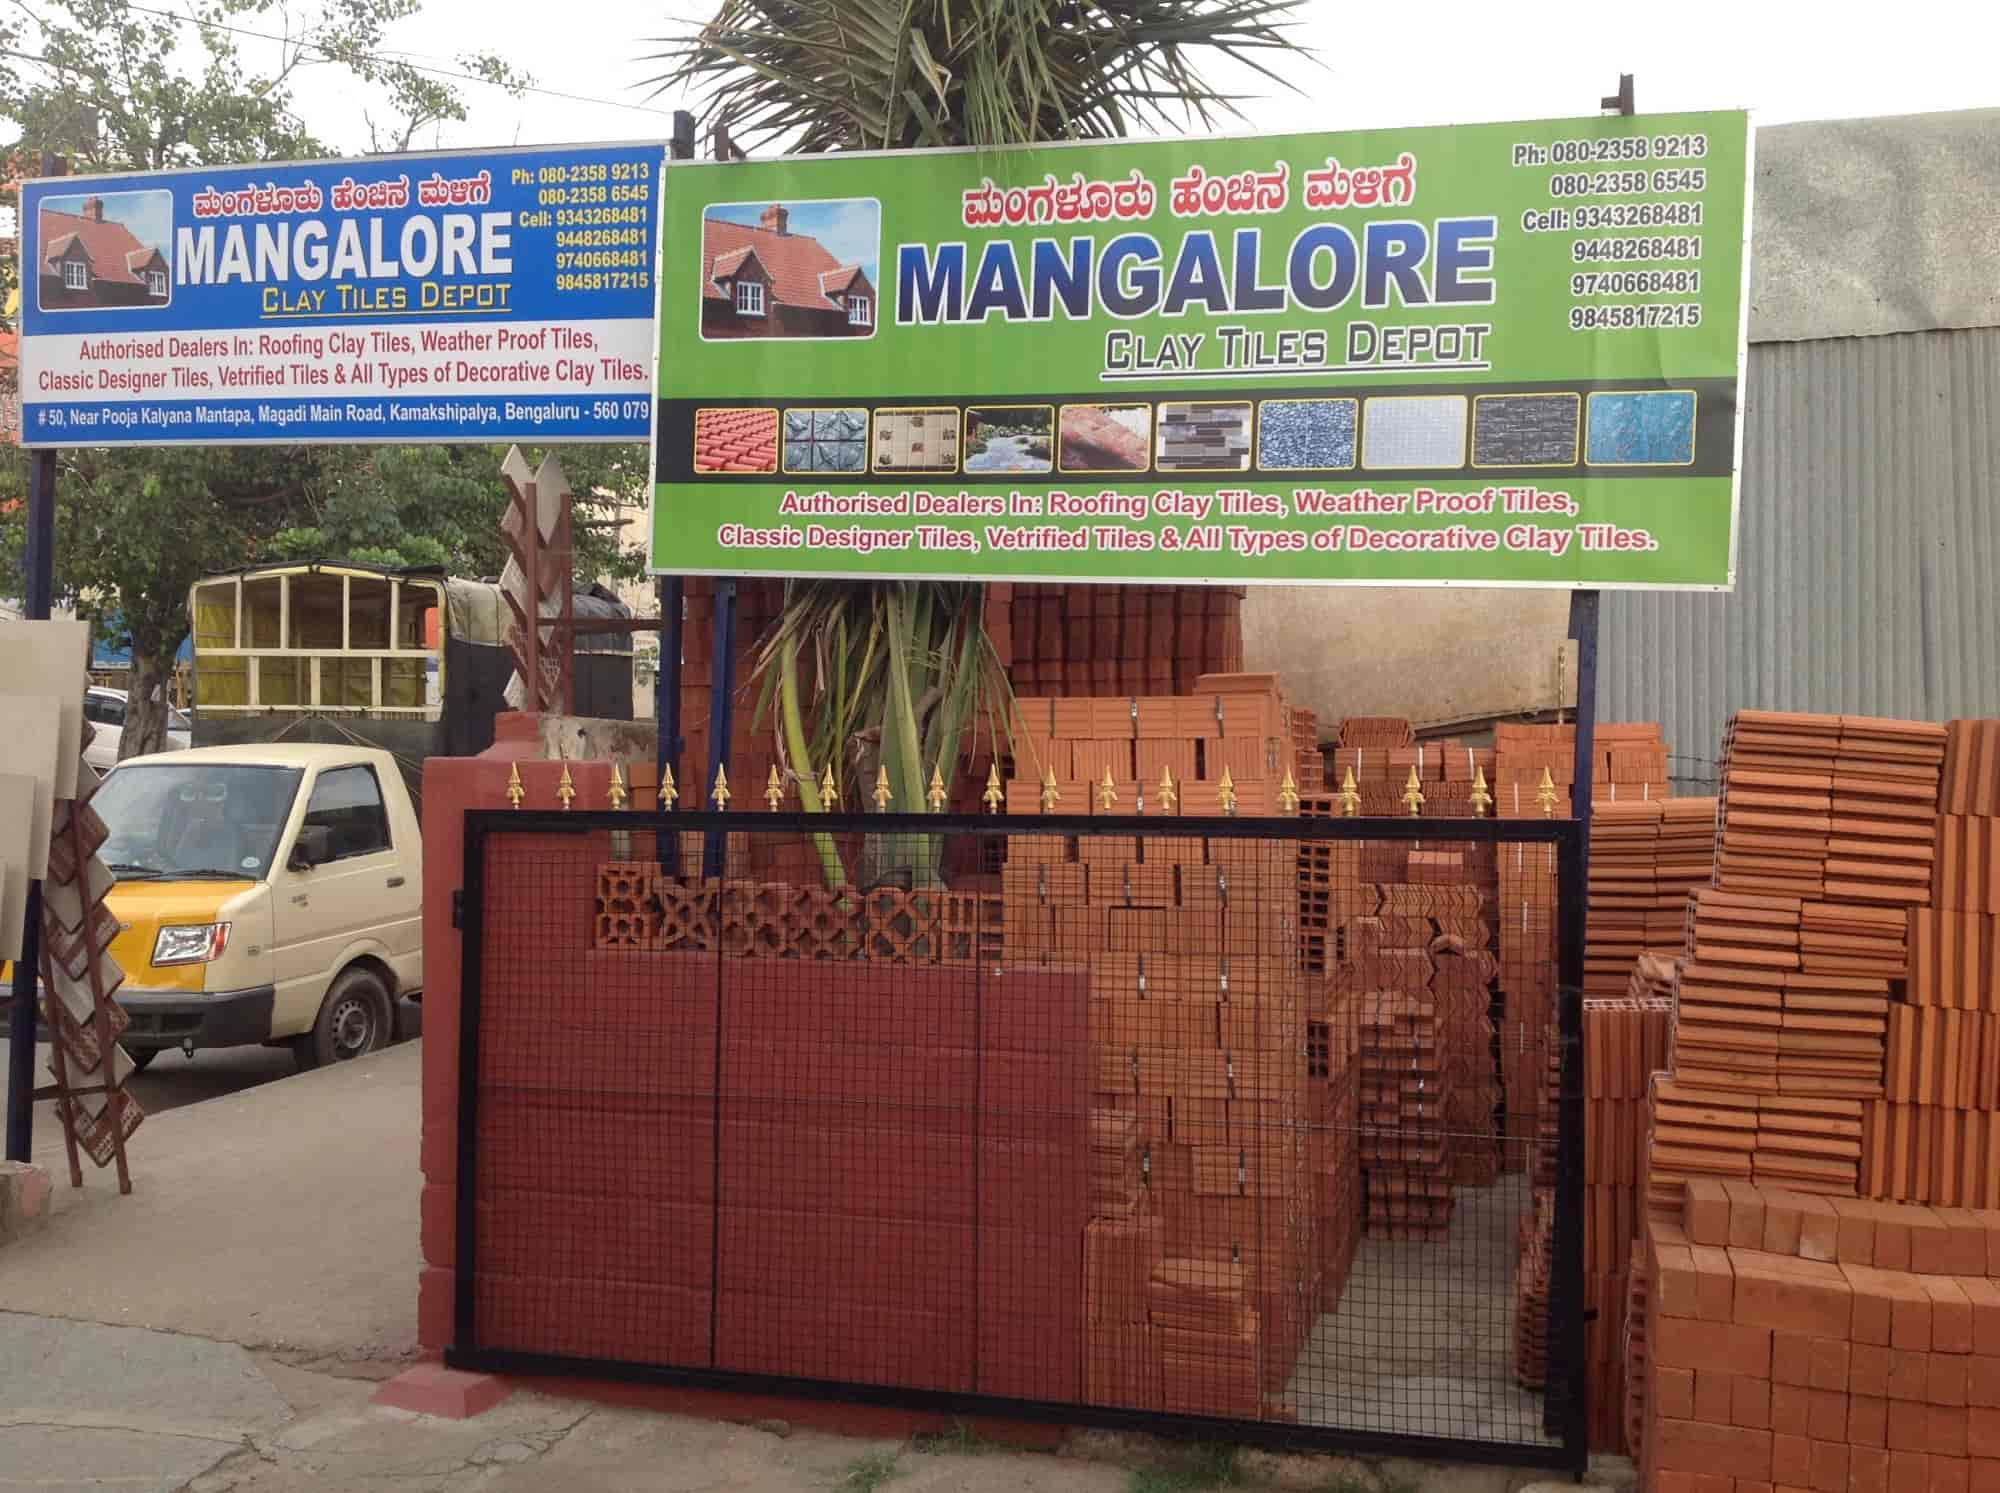 Mangalore Clay Tiles Depot, Kamakshipalya - Tile Dealers in ...